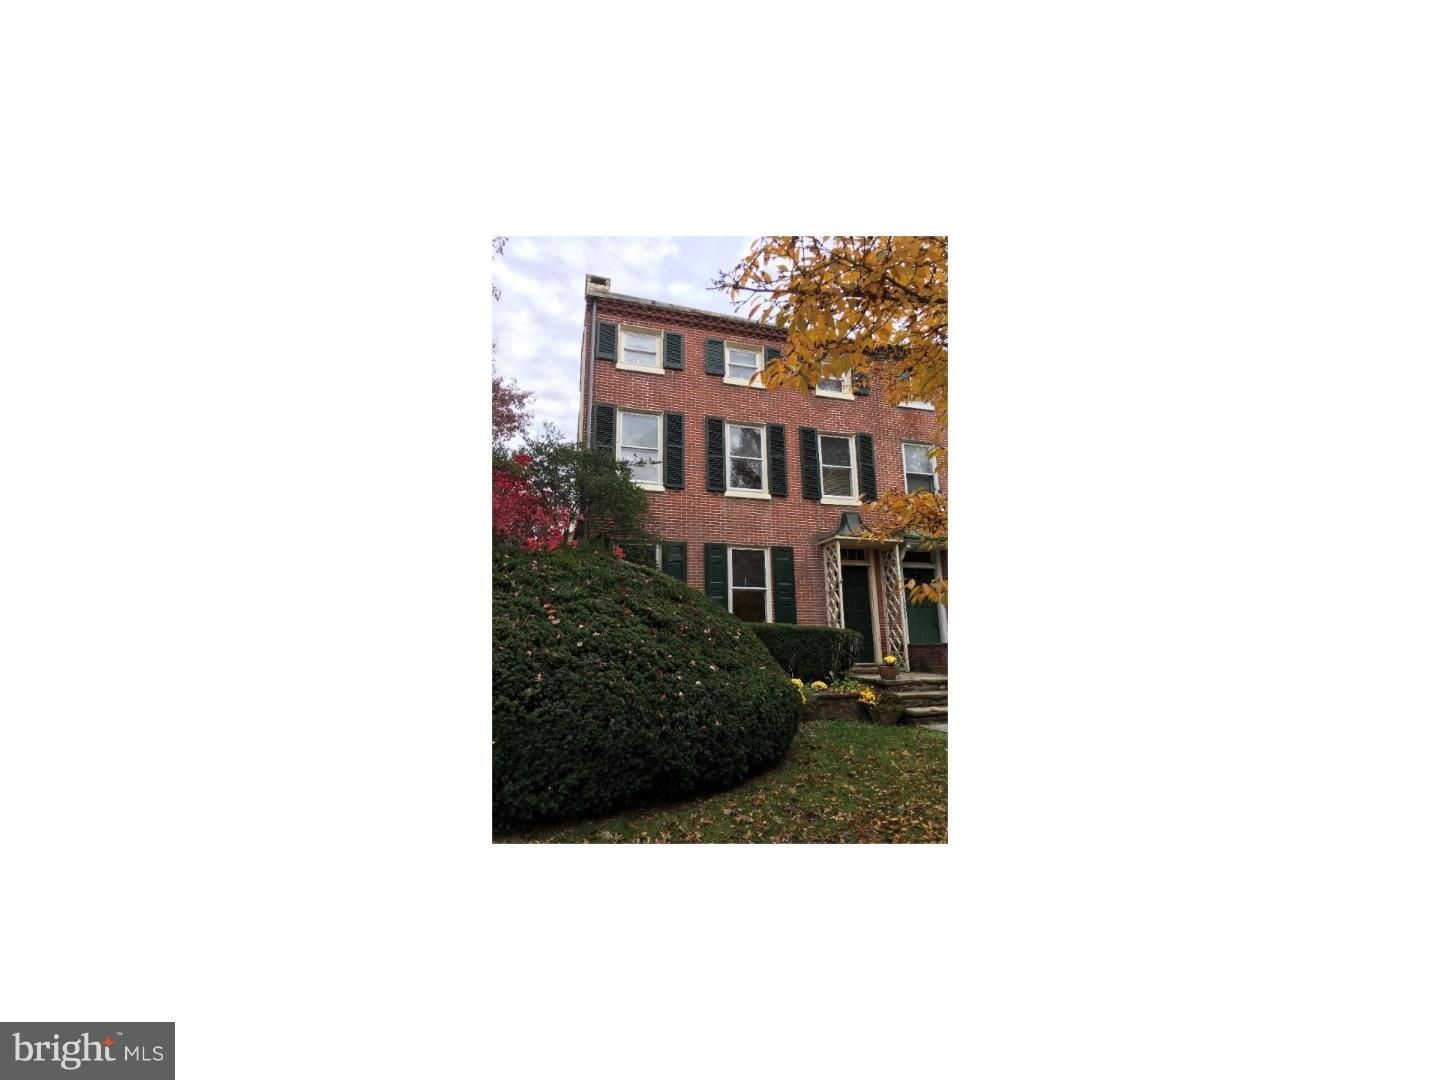 329 N High Street West Chester , PA 19380